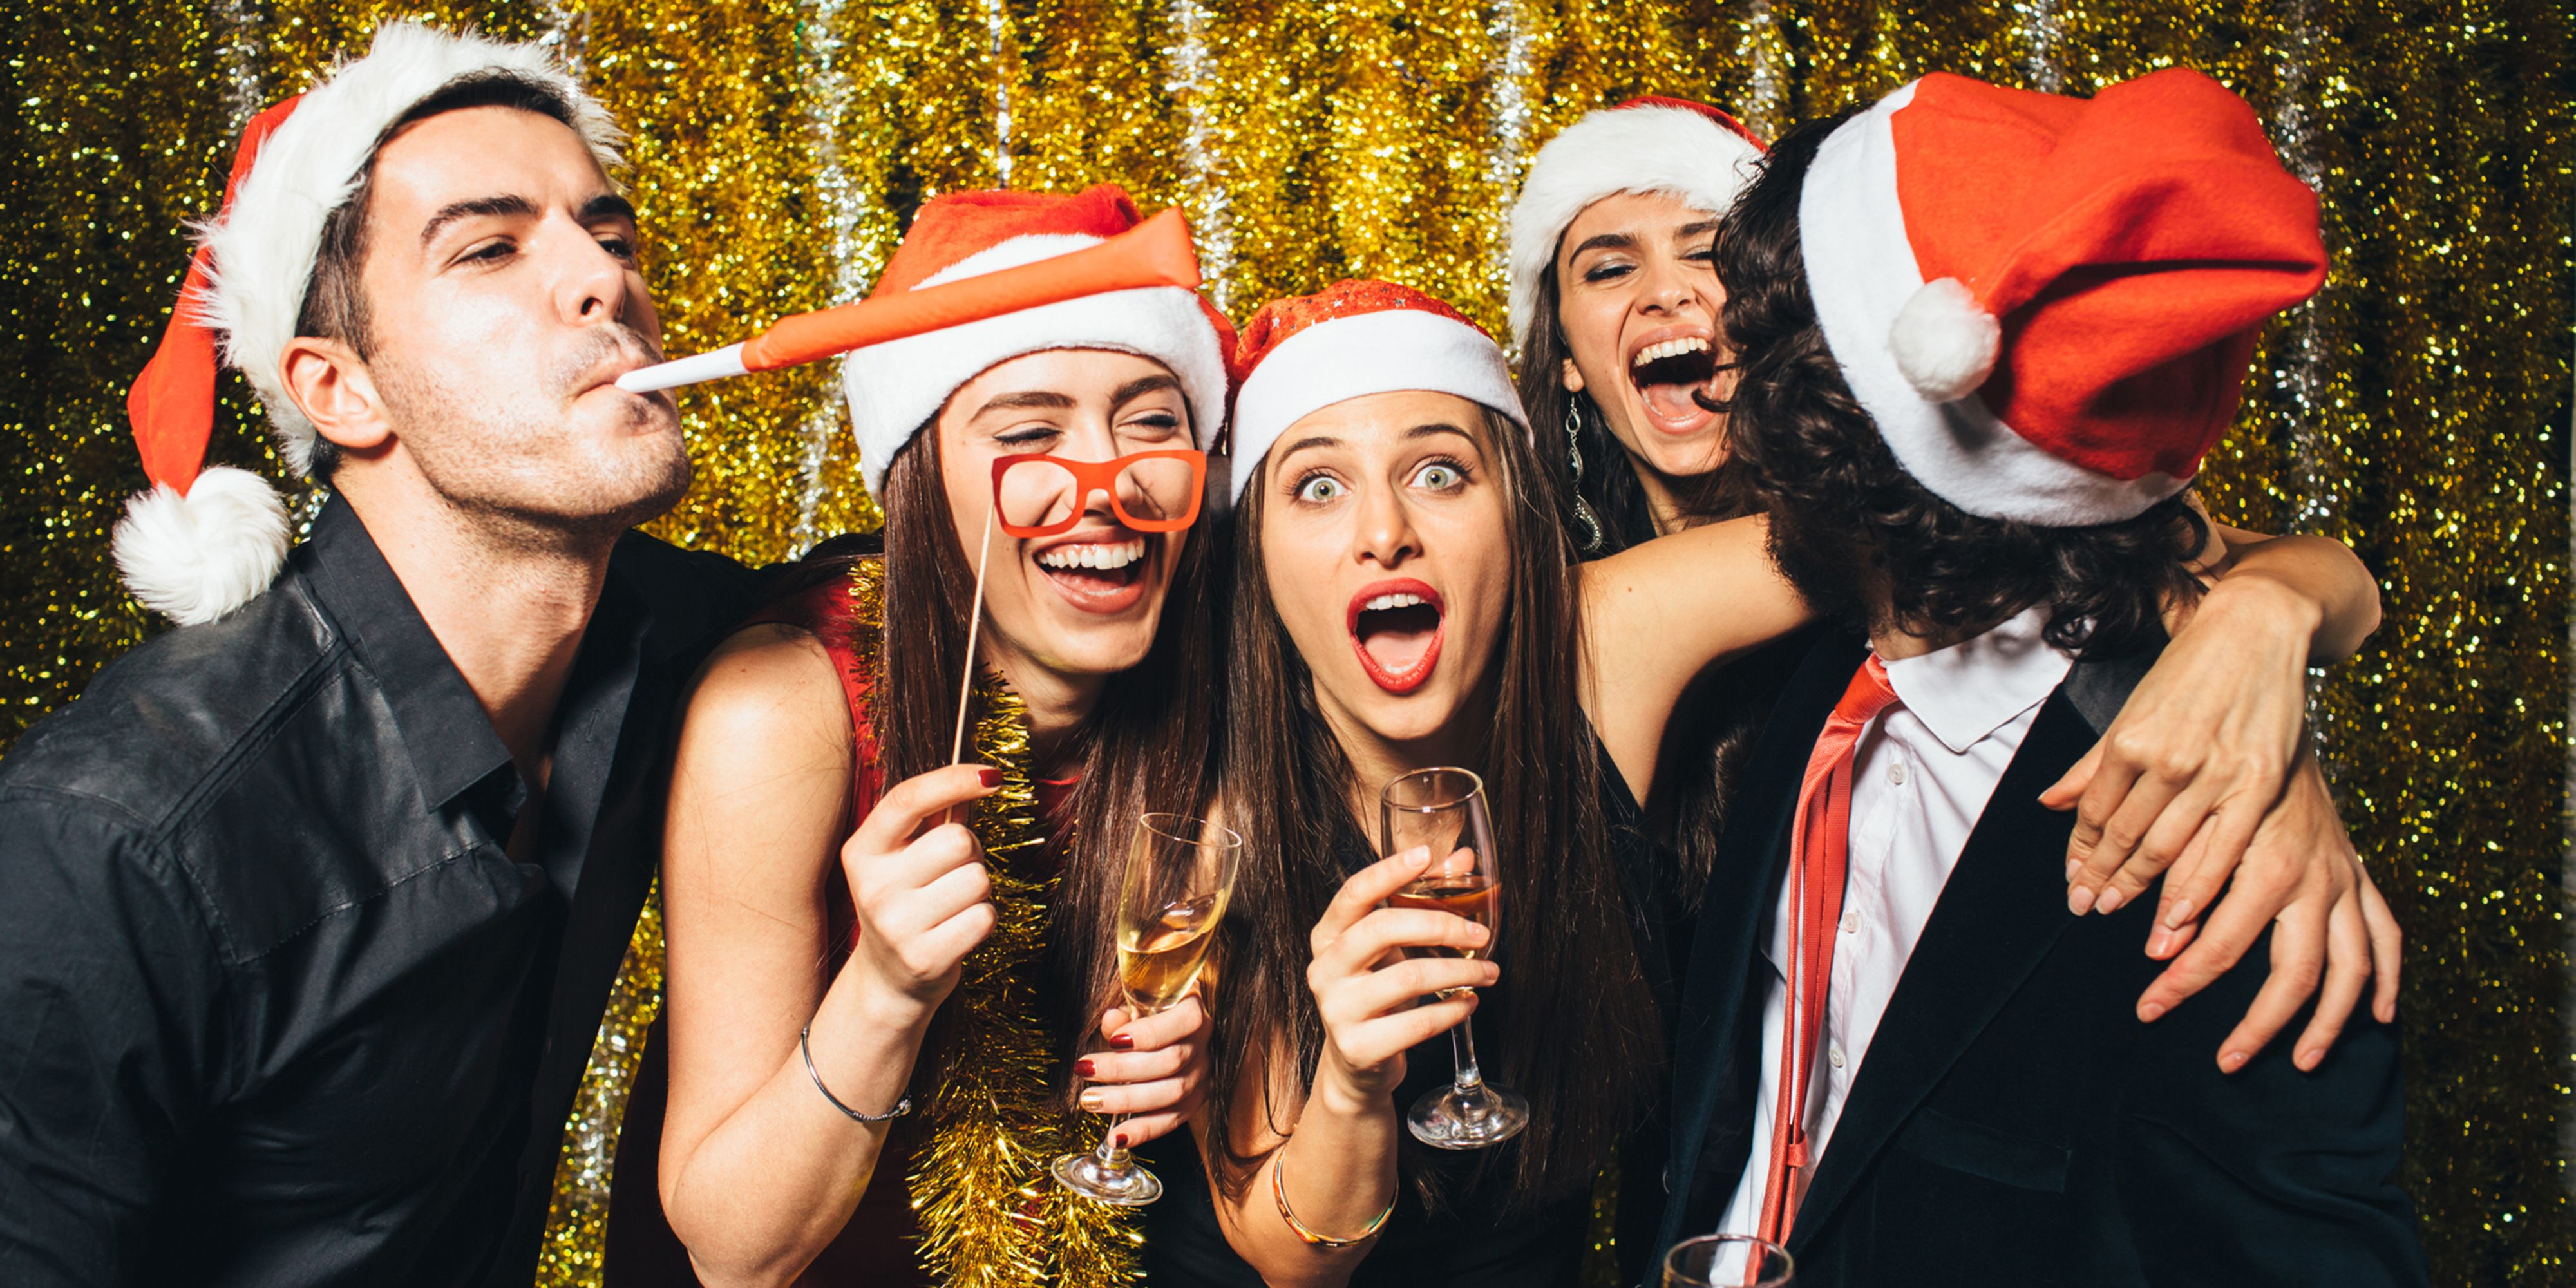 Fun Christmas Party Ideas For Adults Part - 50: 20 Best Christmas Party Themes 2017 - Fun Adult Christmas Party Ideas